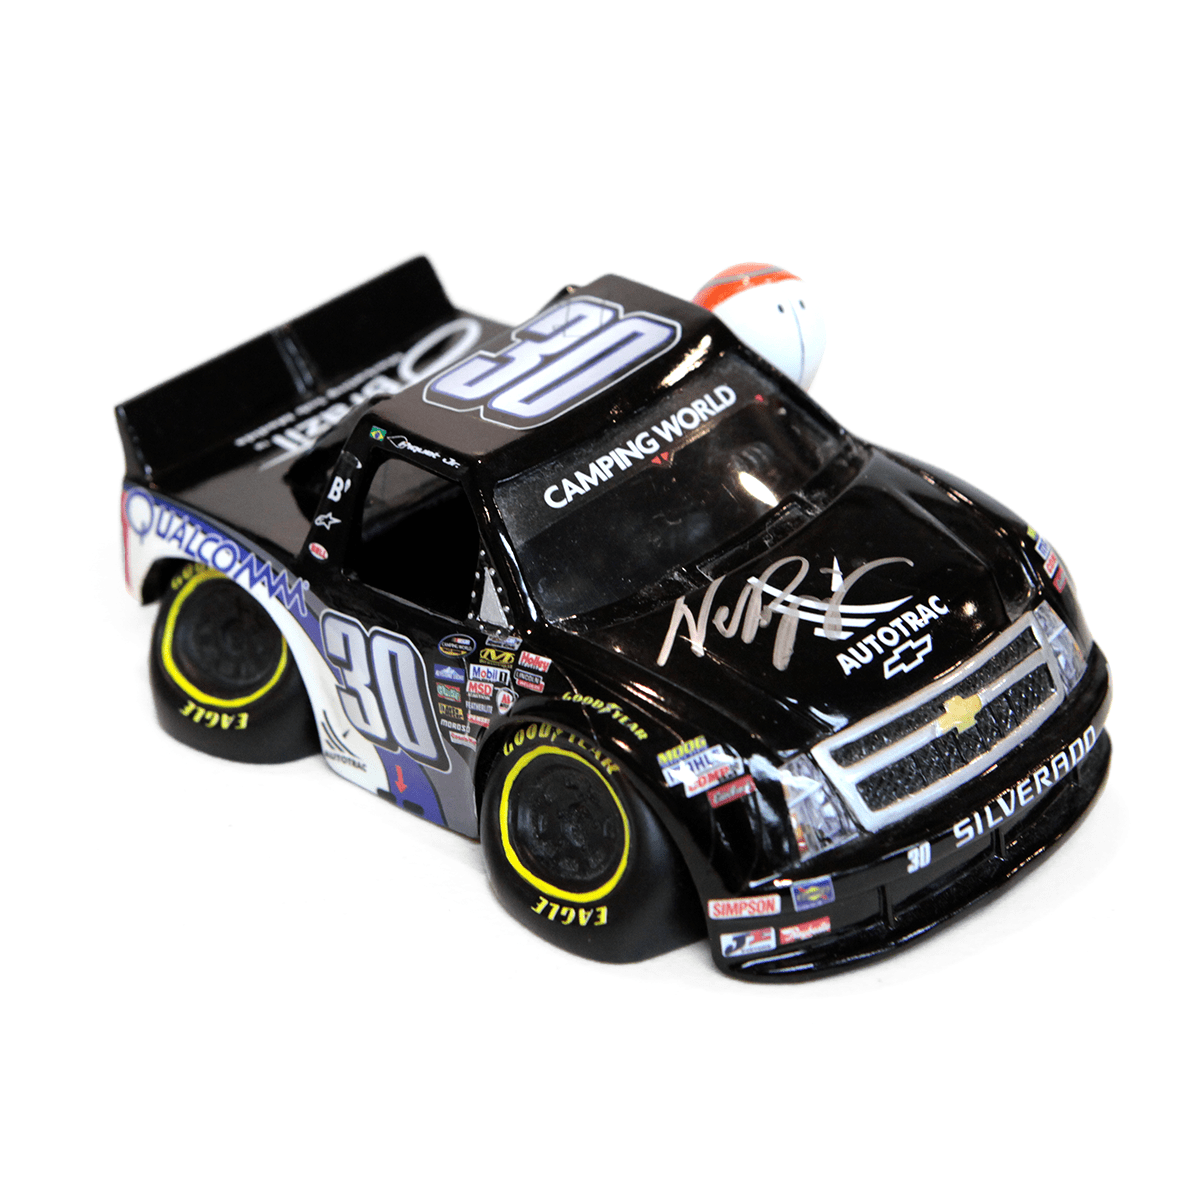 Camping World Truck Autographed by Nelson Piquet Jr.